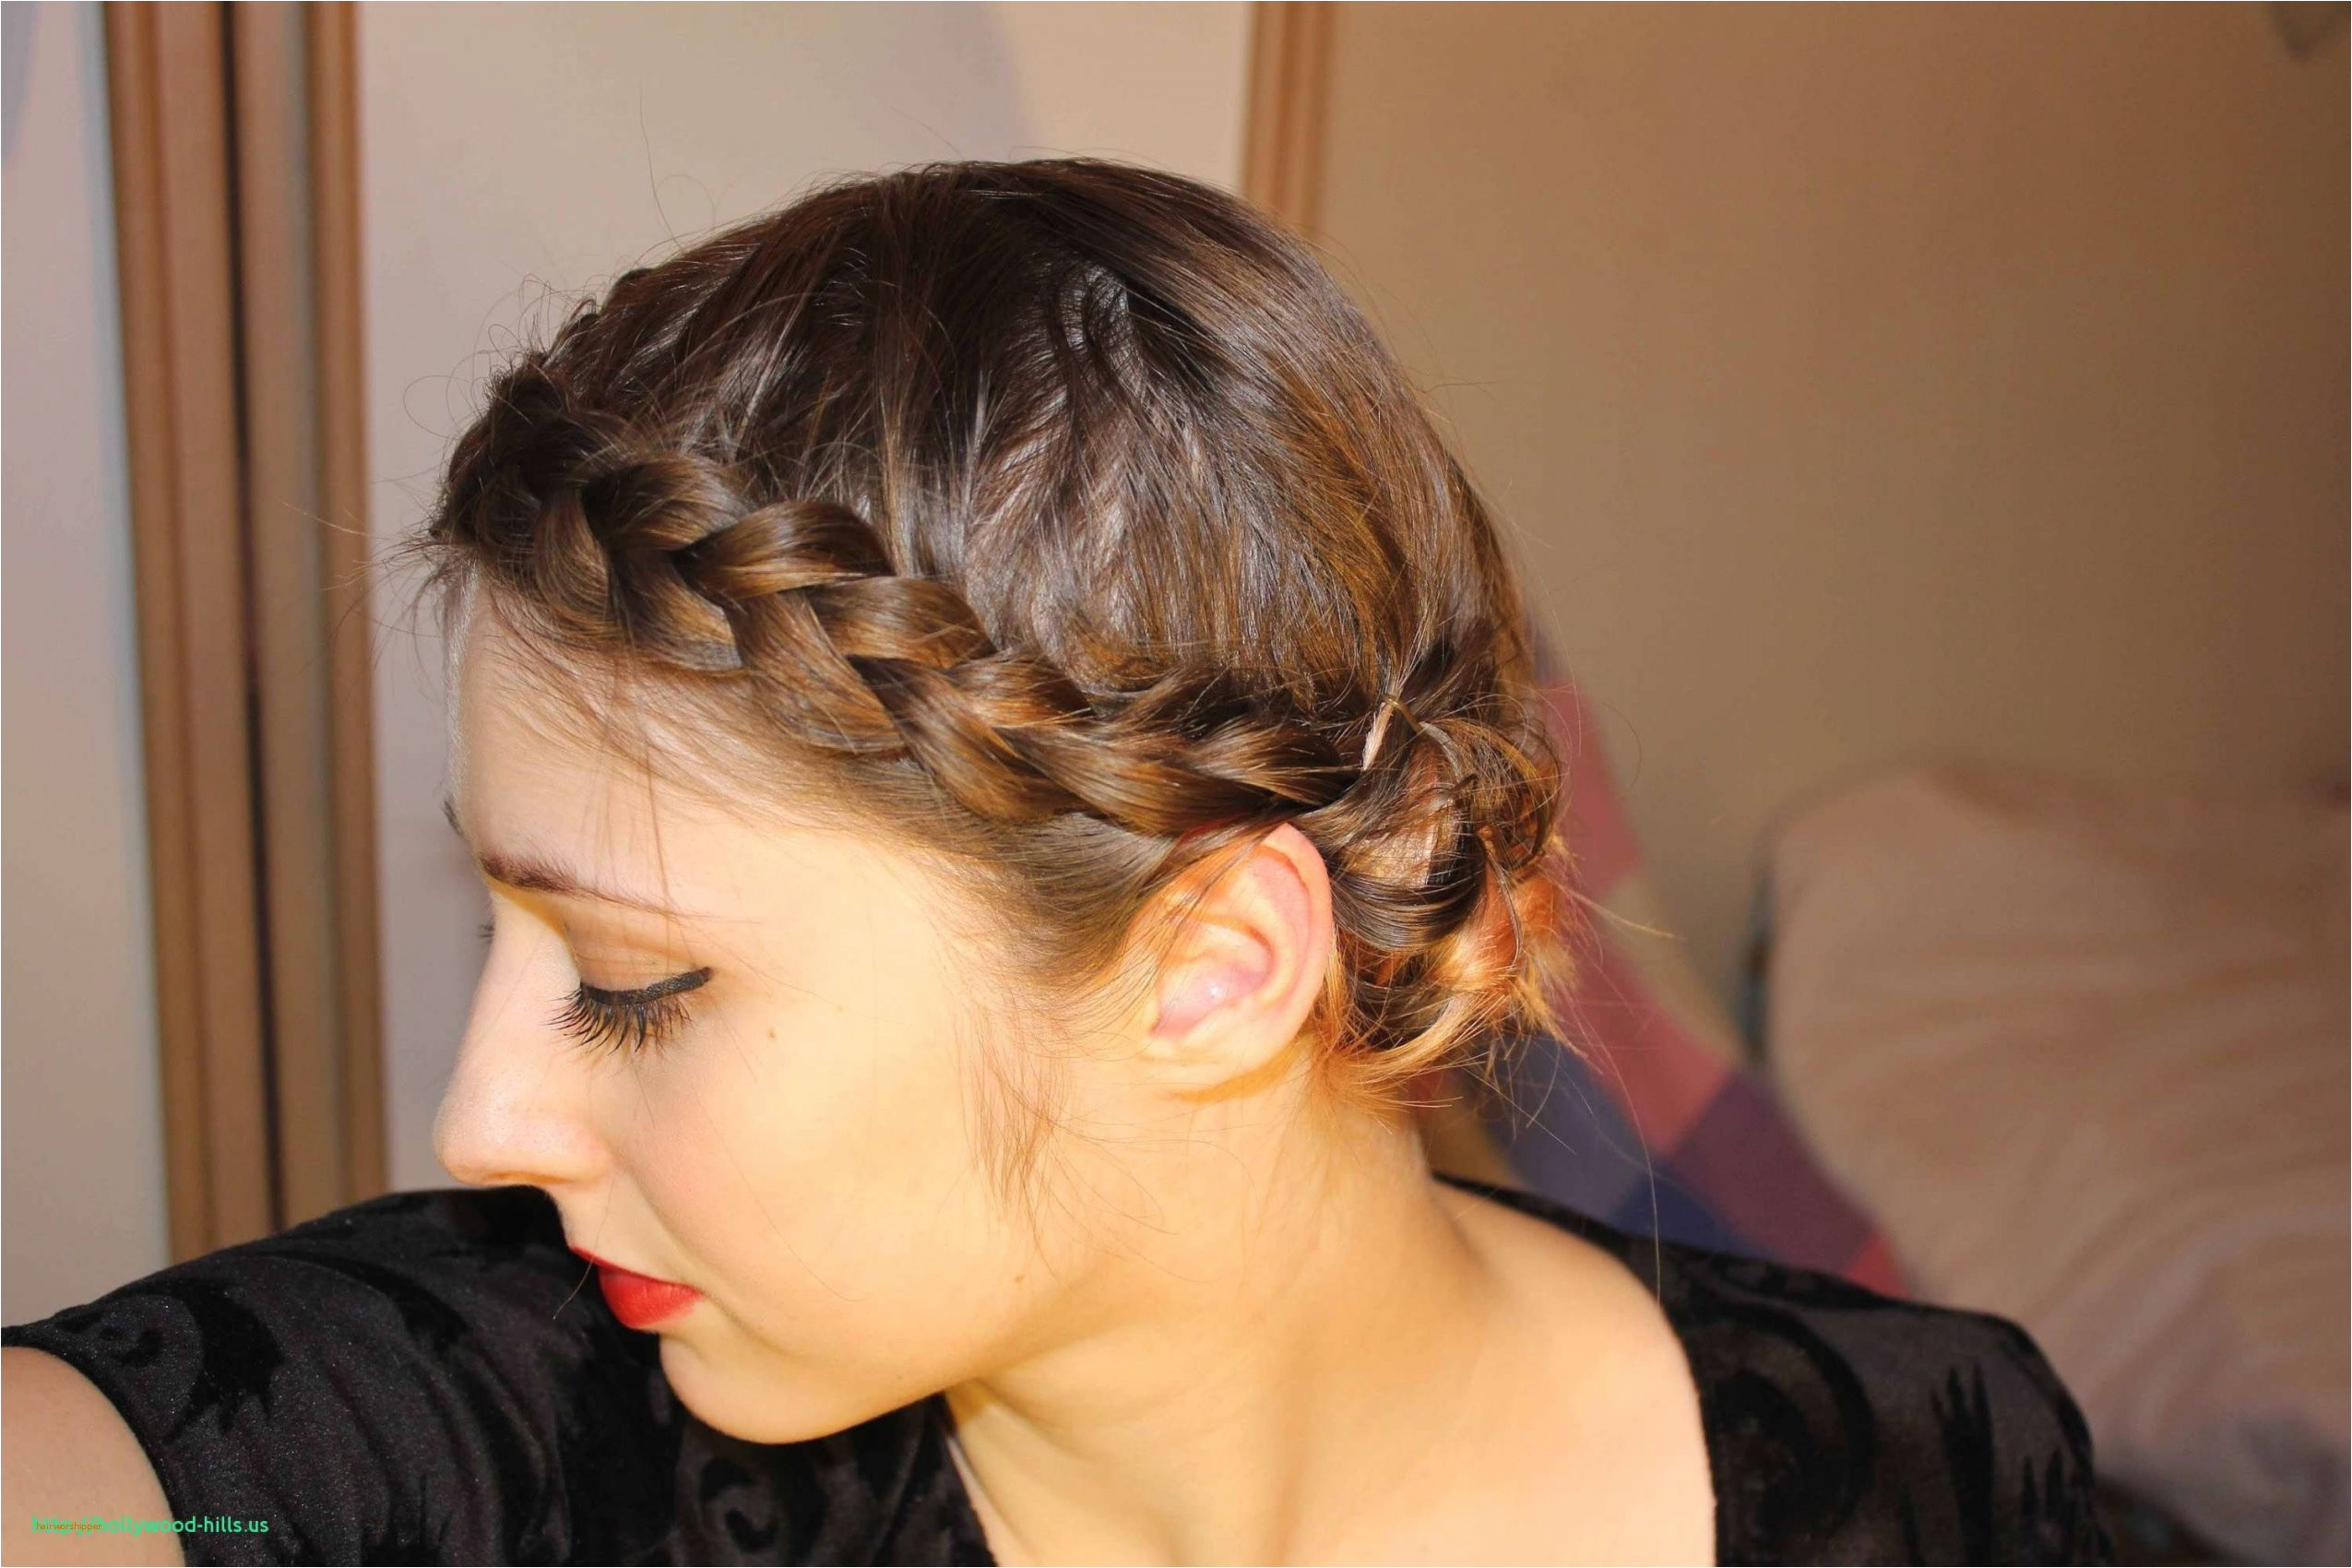 Easy Hairstyles for Thin Hair Youtube Amazing Quick and Easy Hairstyles for Medium Length Hair Youtube